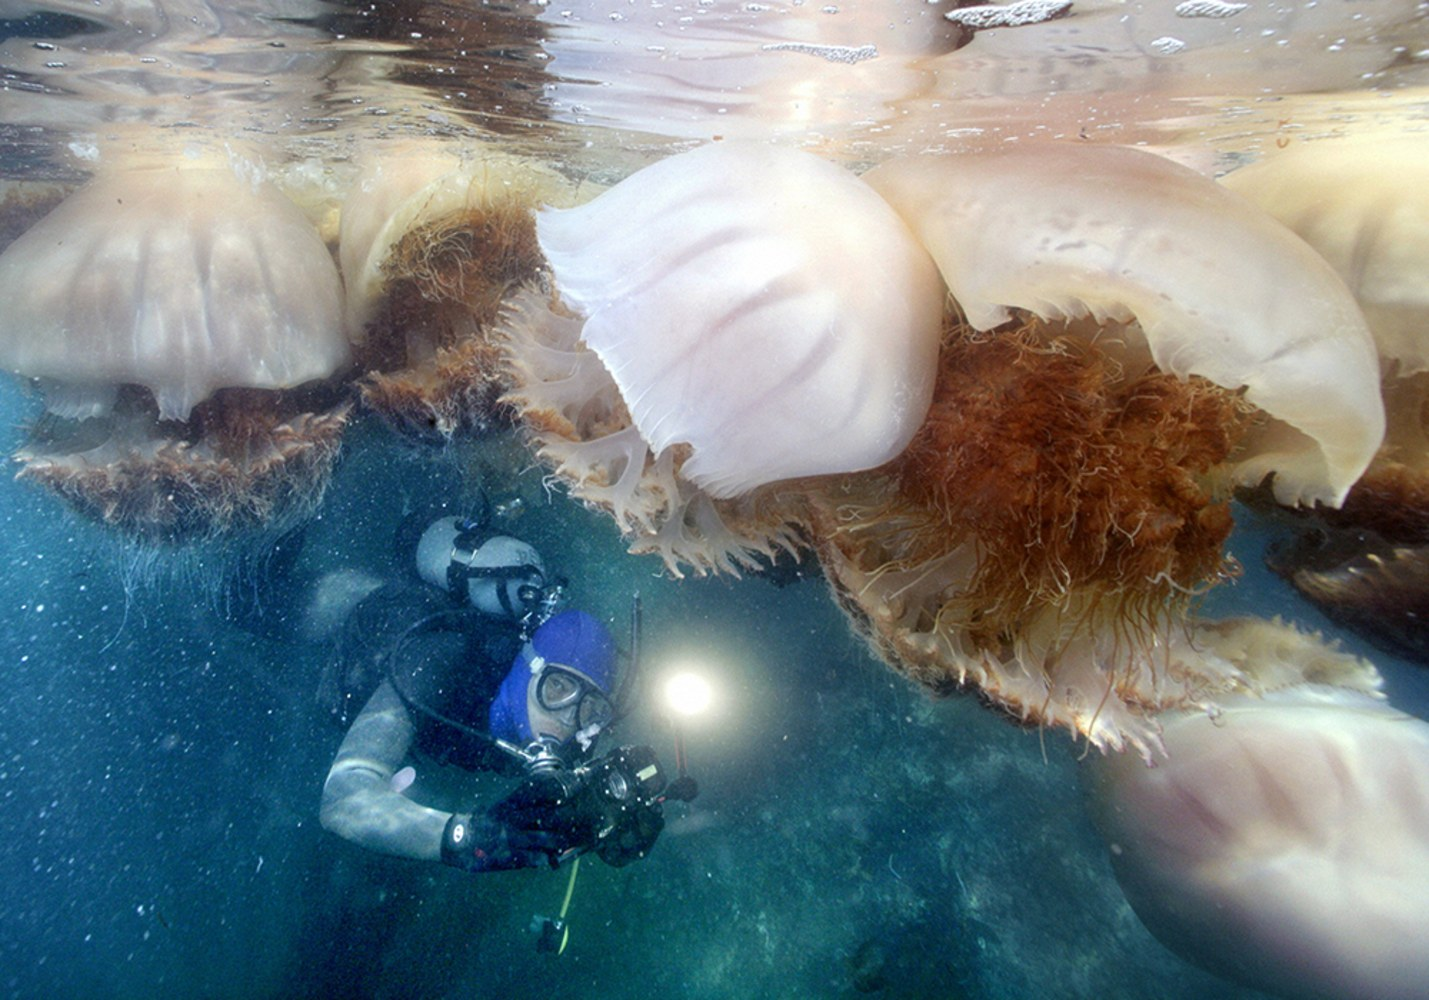 The jellyfish are coming! Experts tangle with exploding ...Japanese Giant Jellyfish